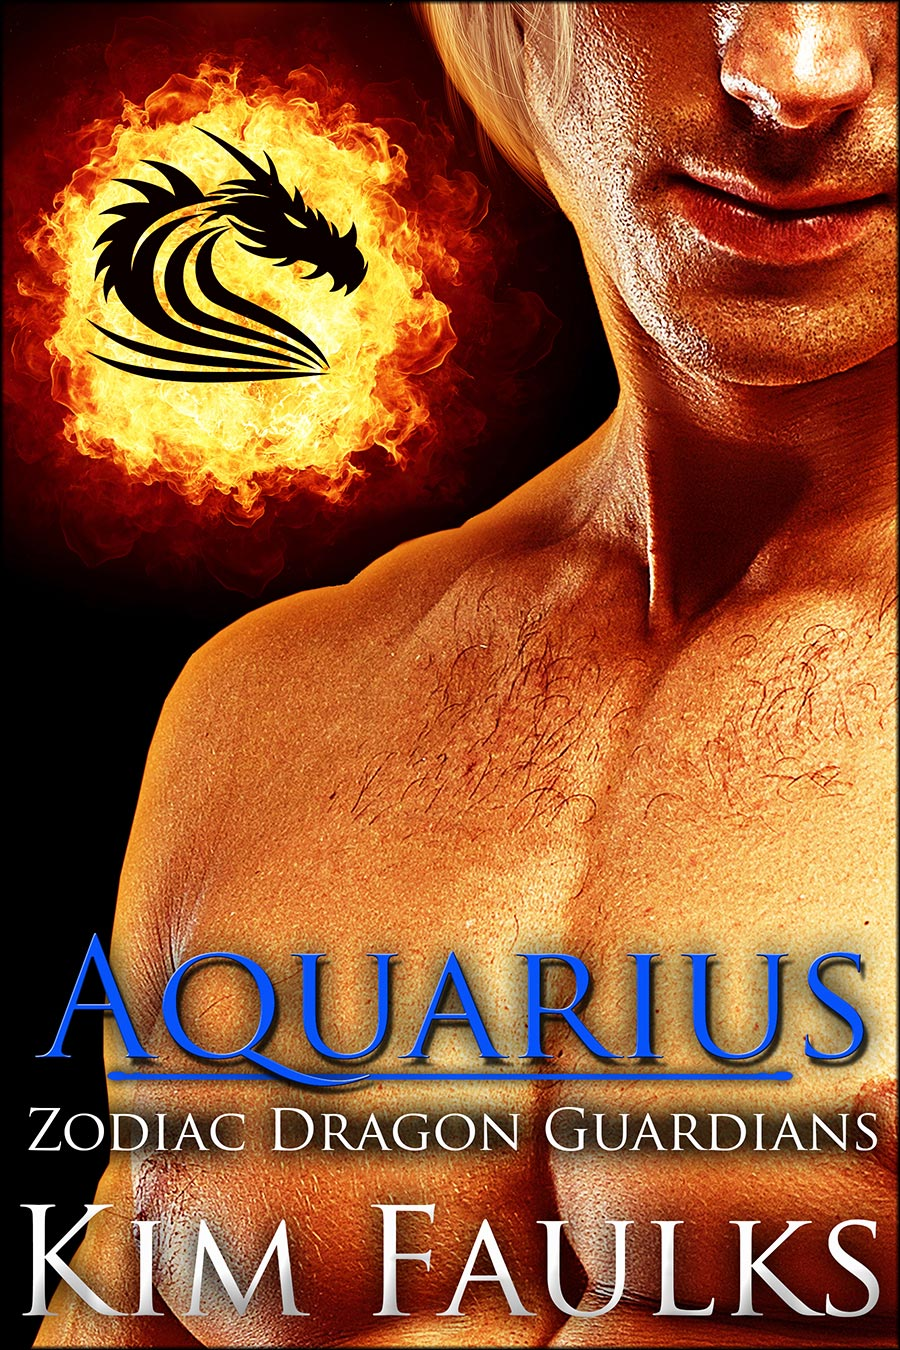 Kim-Faulks---Aquarius.jpg